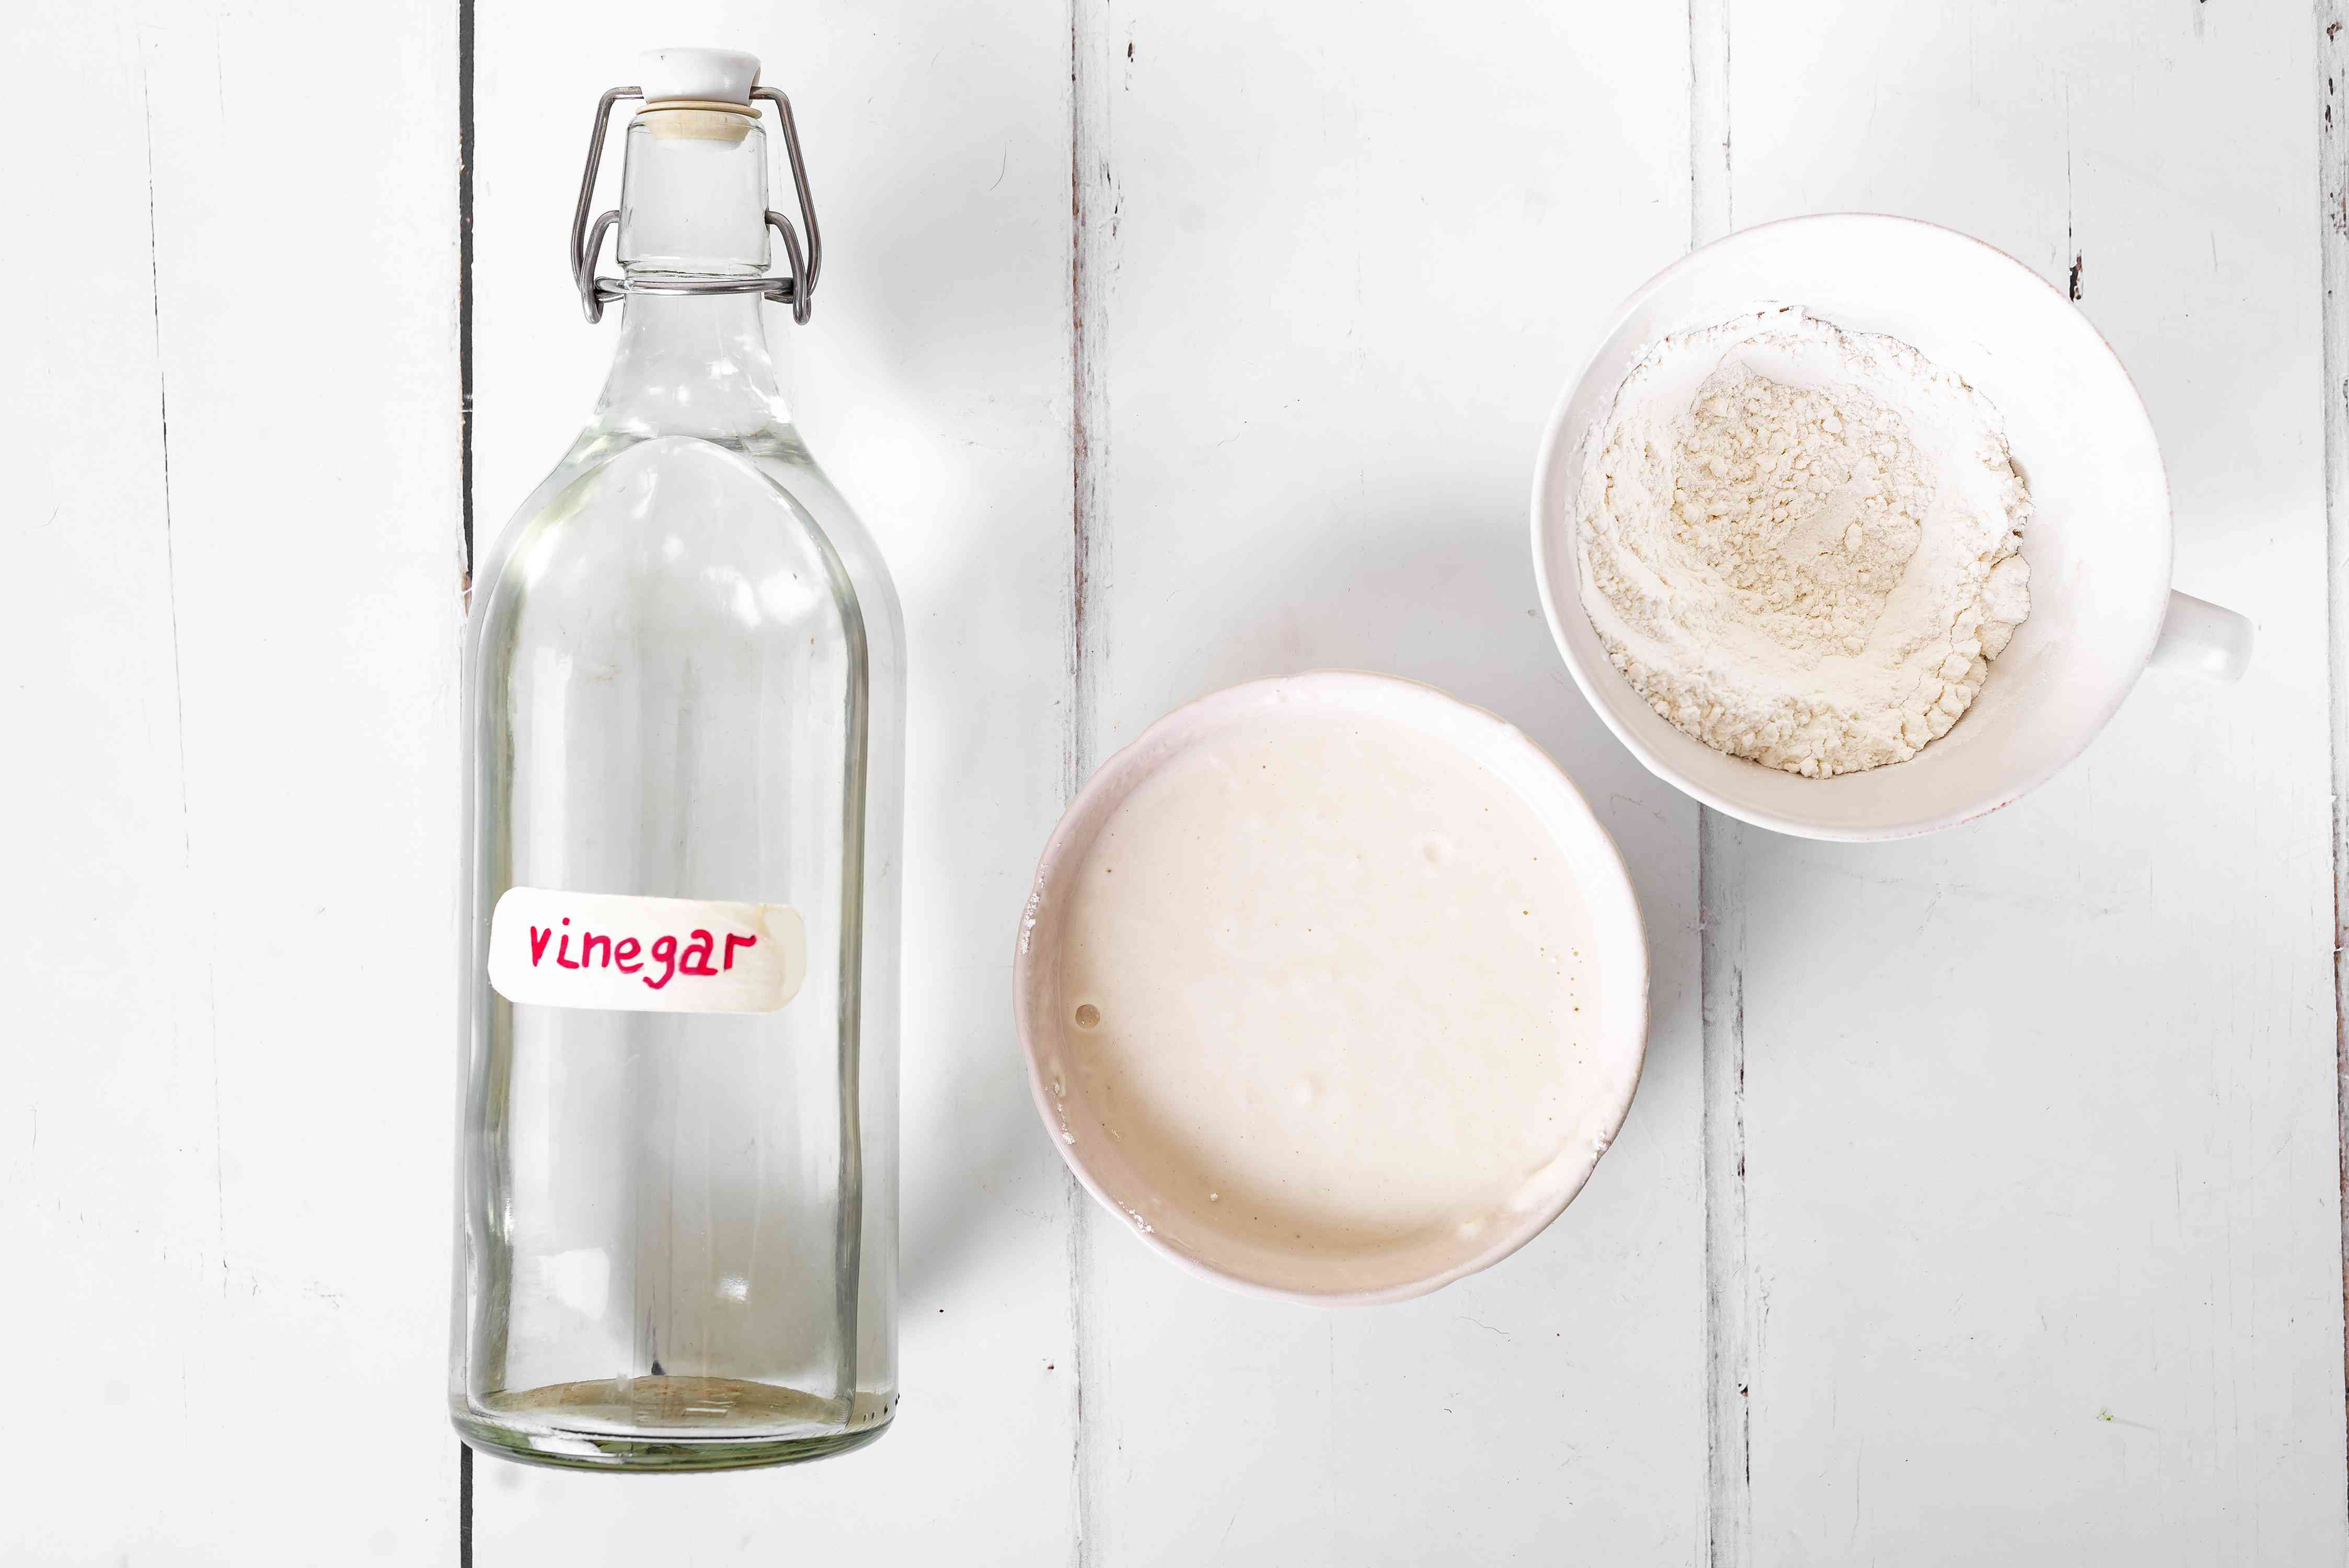 White vinegar in glass bottle next to cup of all-purpose flour to make past in middle